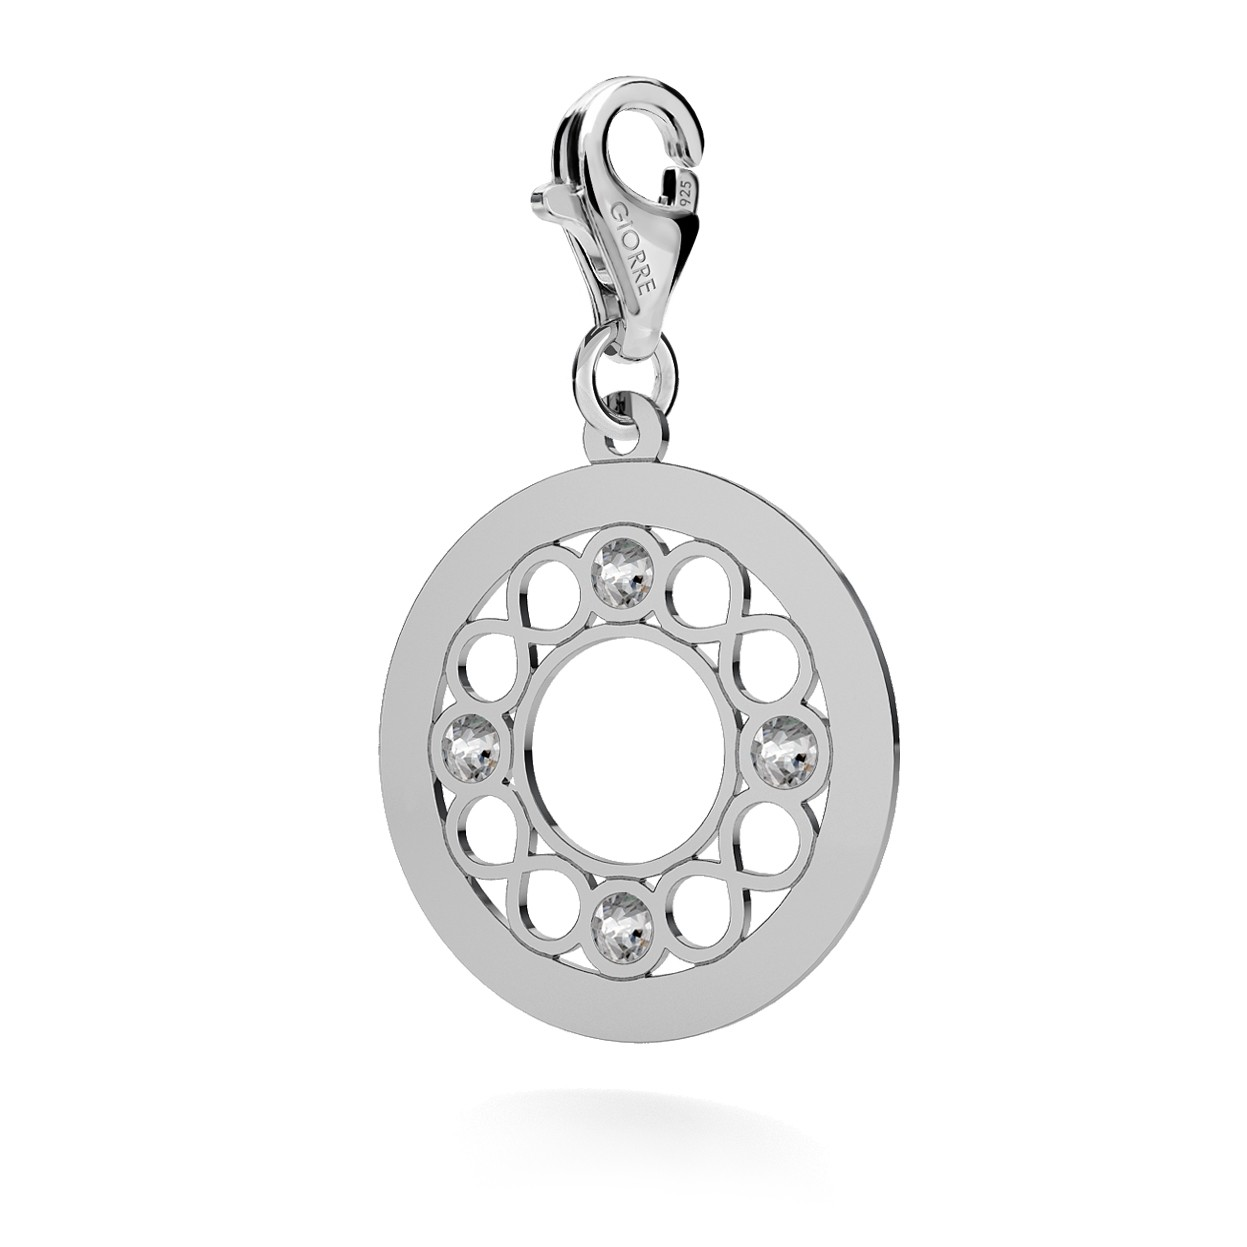 CHARM 78, INFINITY WHEEL, SWAROVSKI 2038 SS 6, STERLING SILVER (925) RHODIUM OR GOLD PLATED